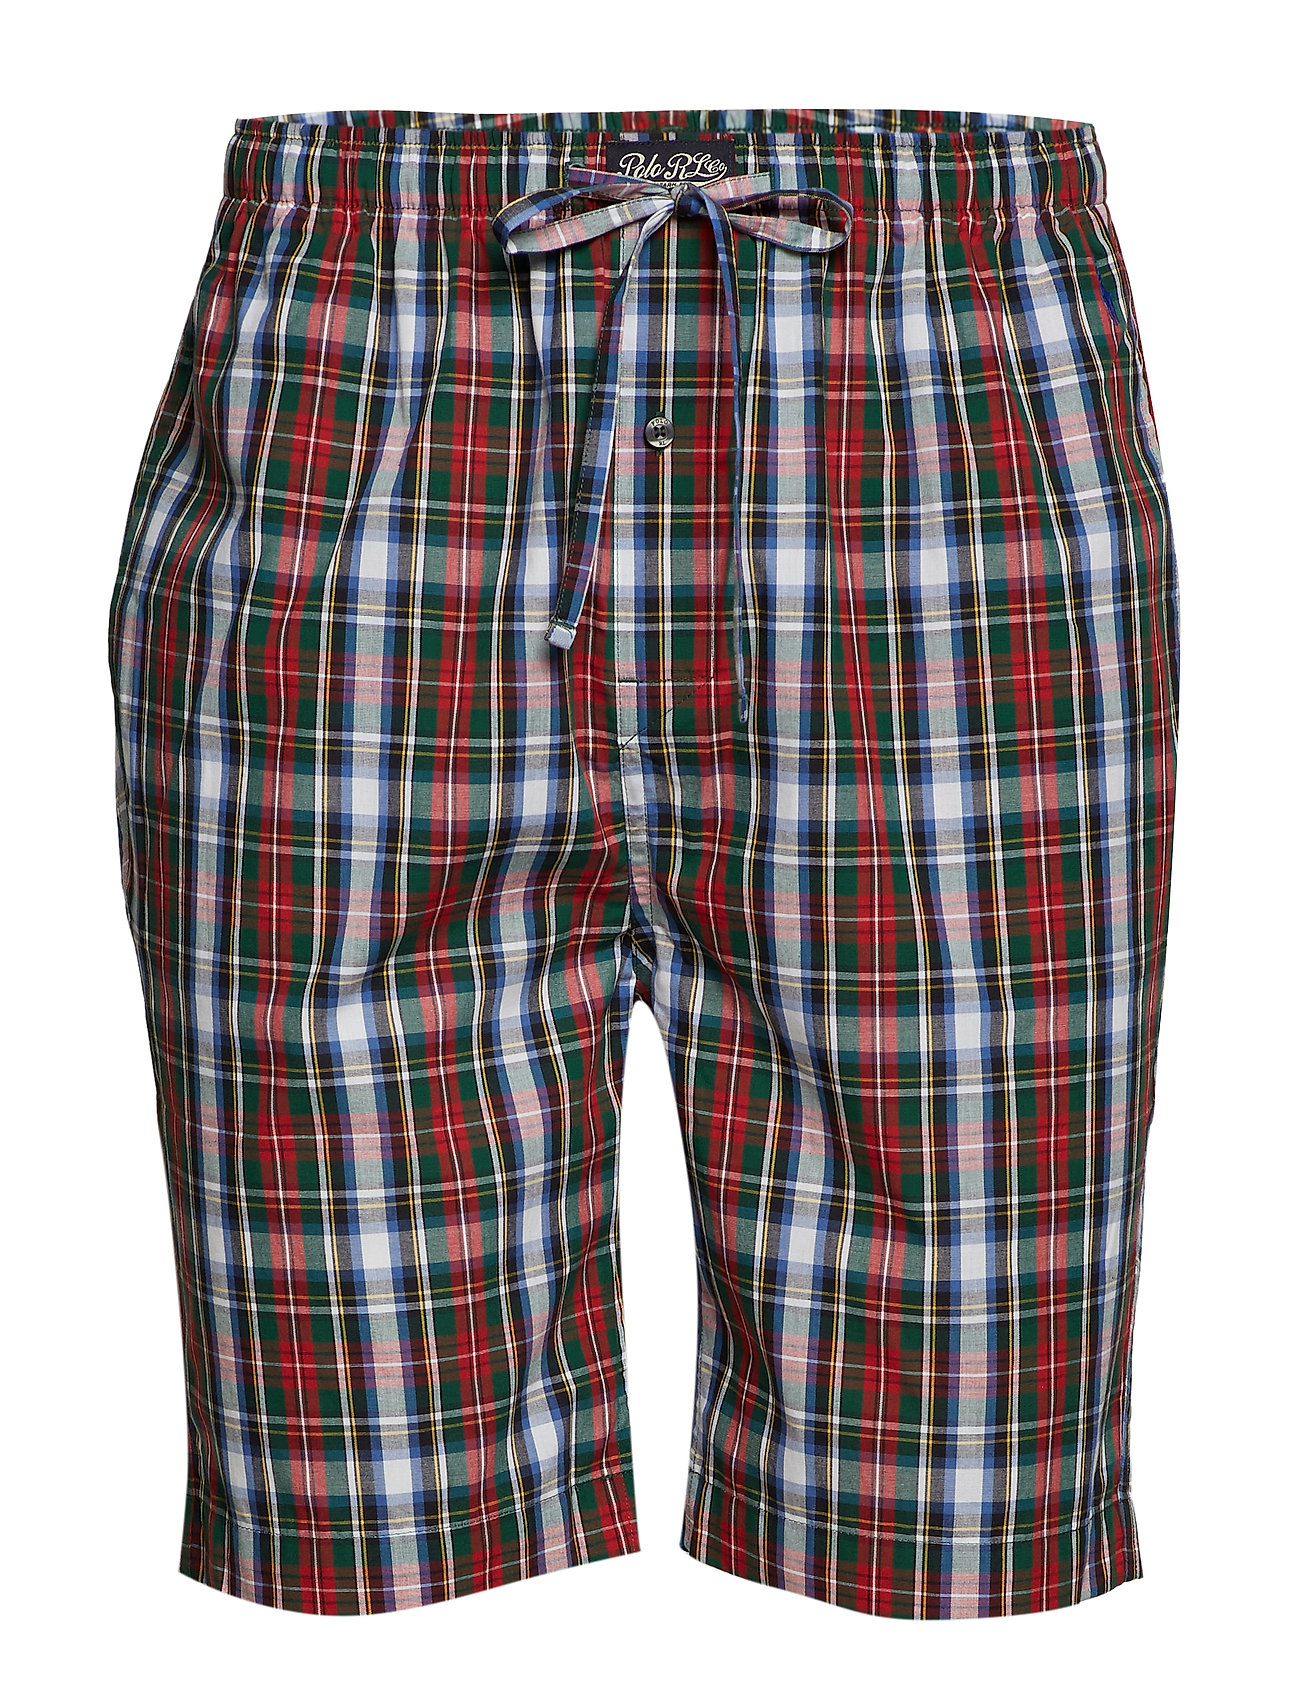 Polo Ralph Lauren Underwear Cotton Sleep Short - WILLIAM PLAID